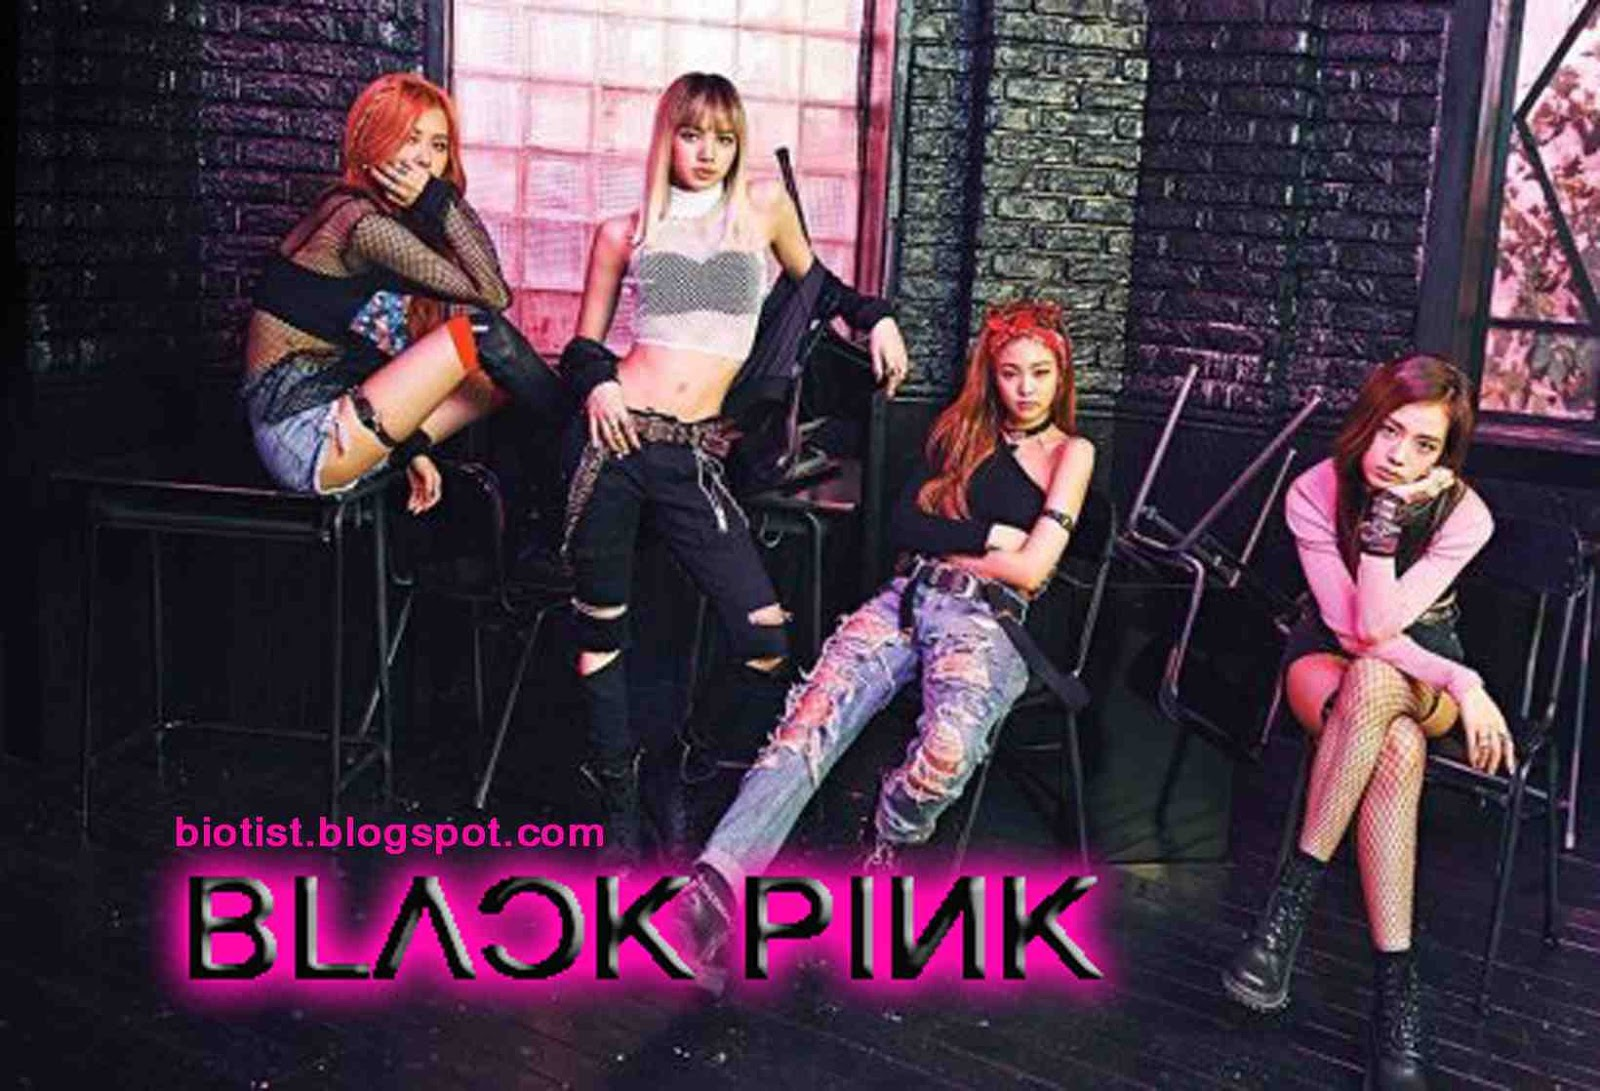 Black pink profile facts photos and biography of blkpik blackpink black pink profile bios fact photos and other stopboris Images